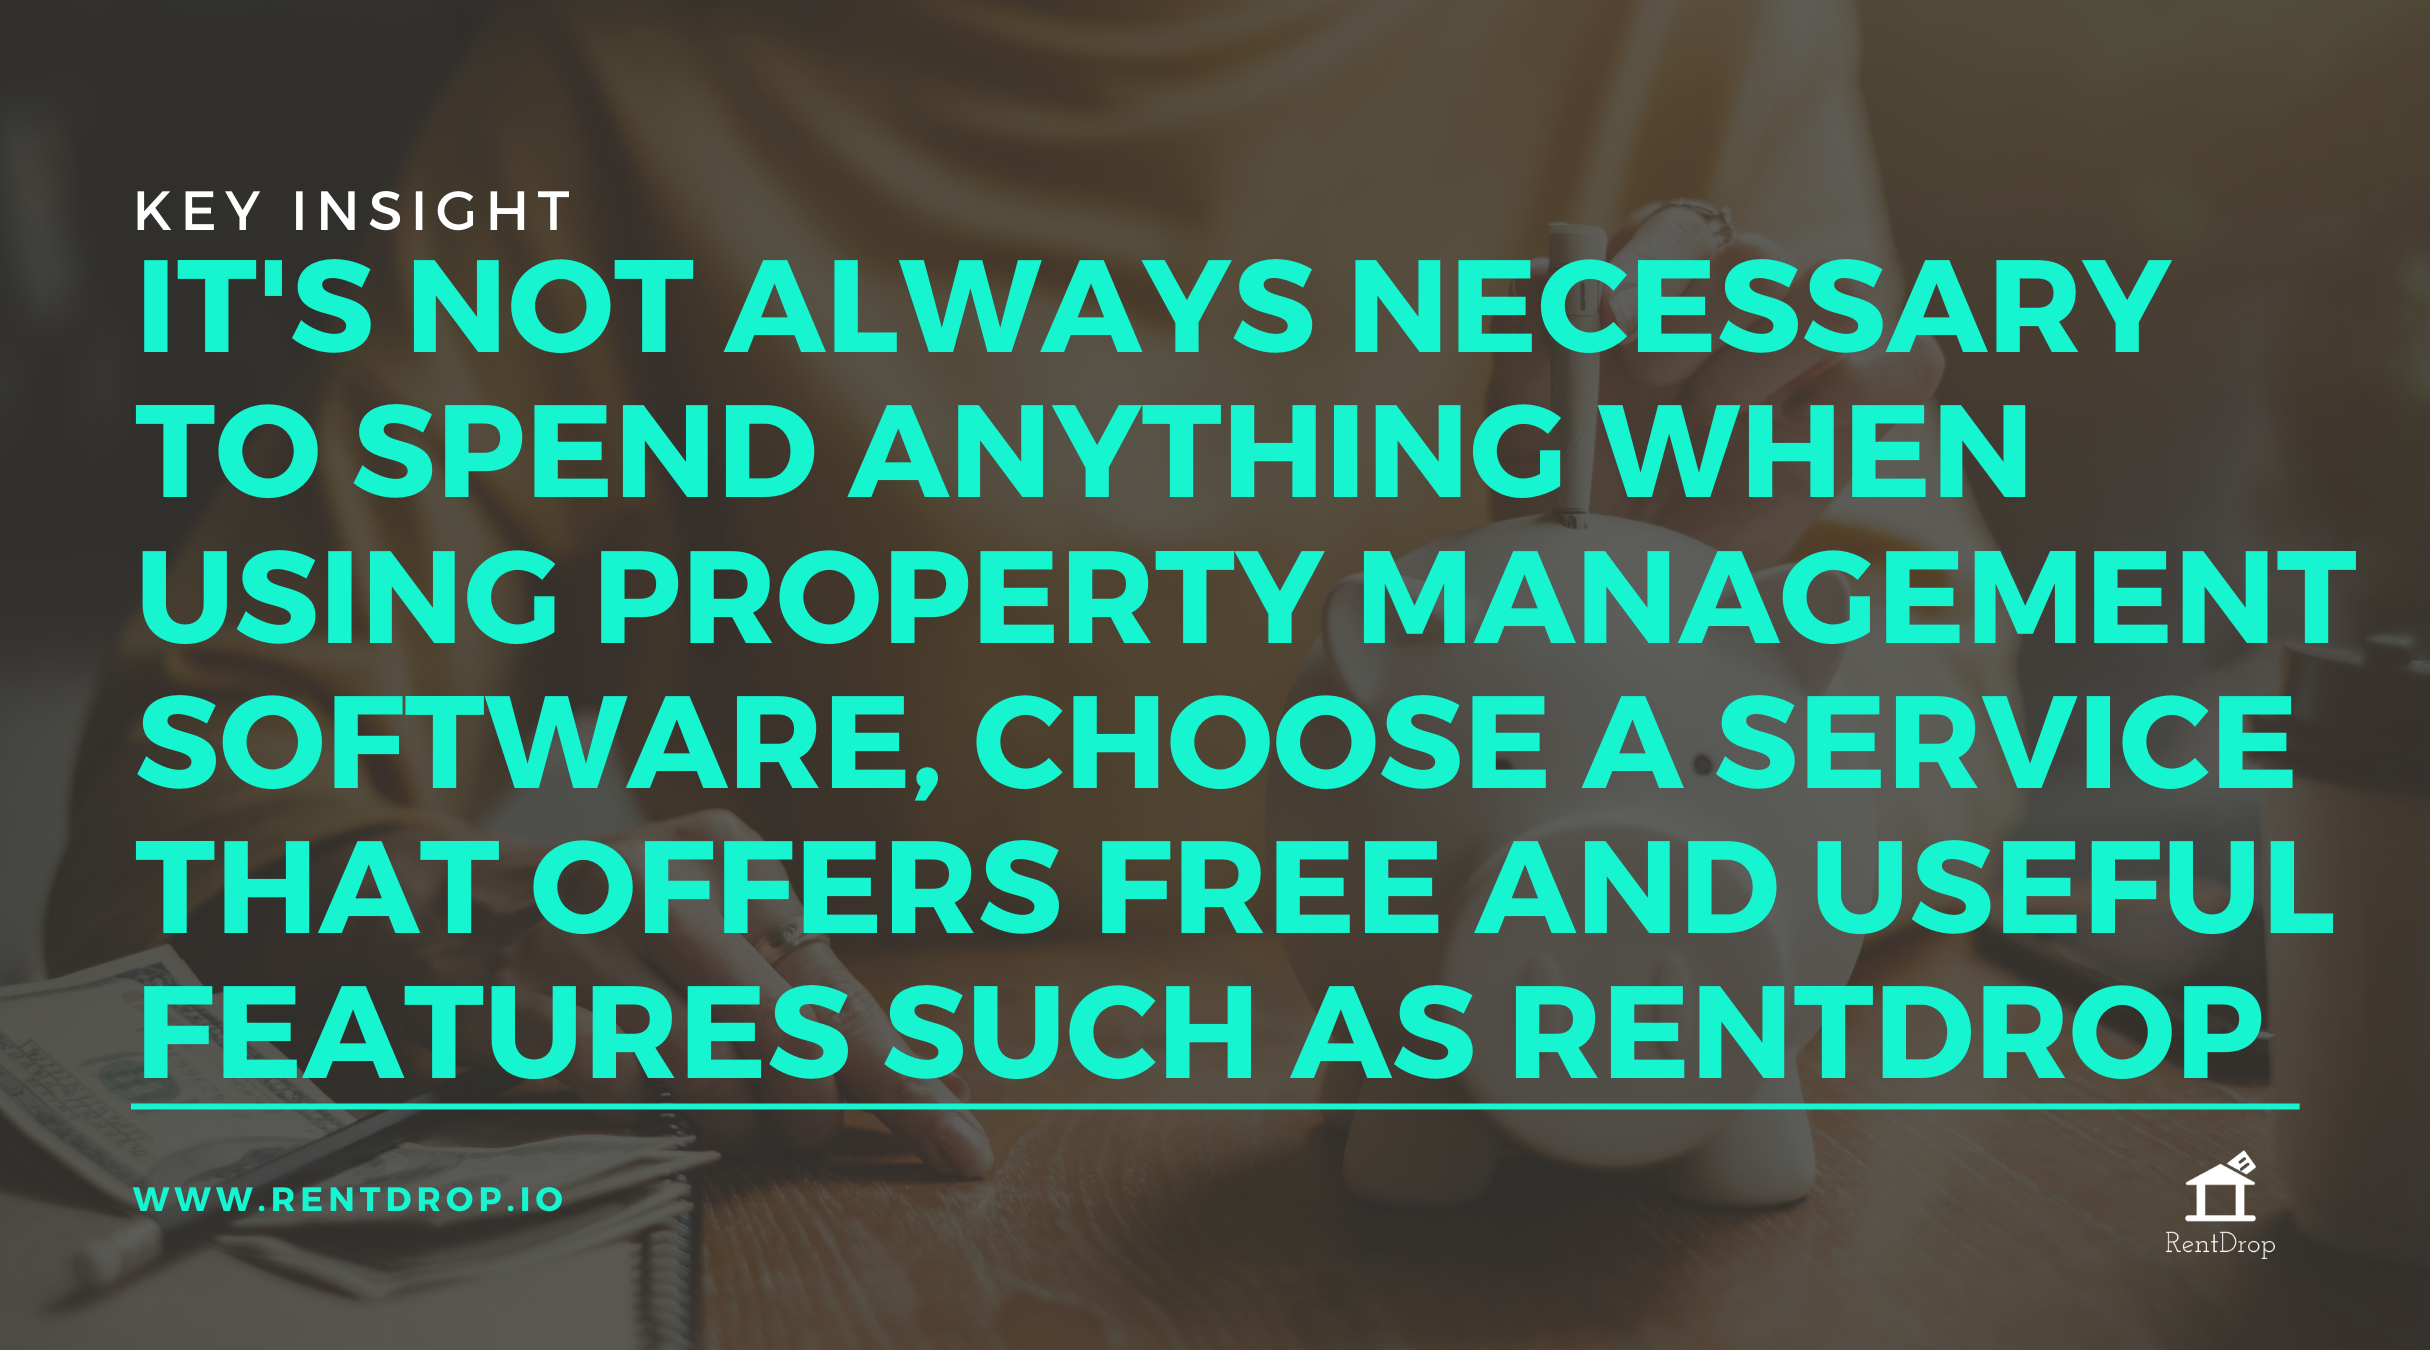 rentdrop property management software quote